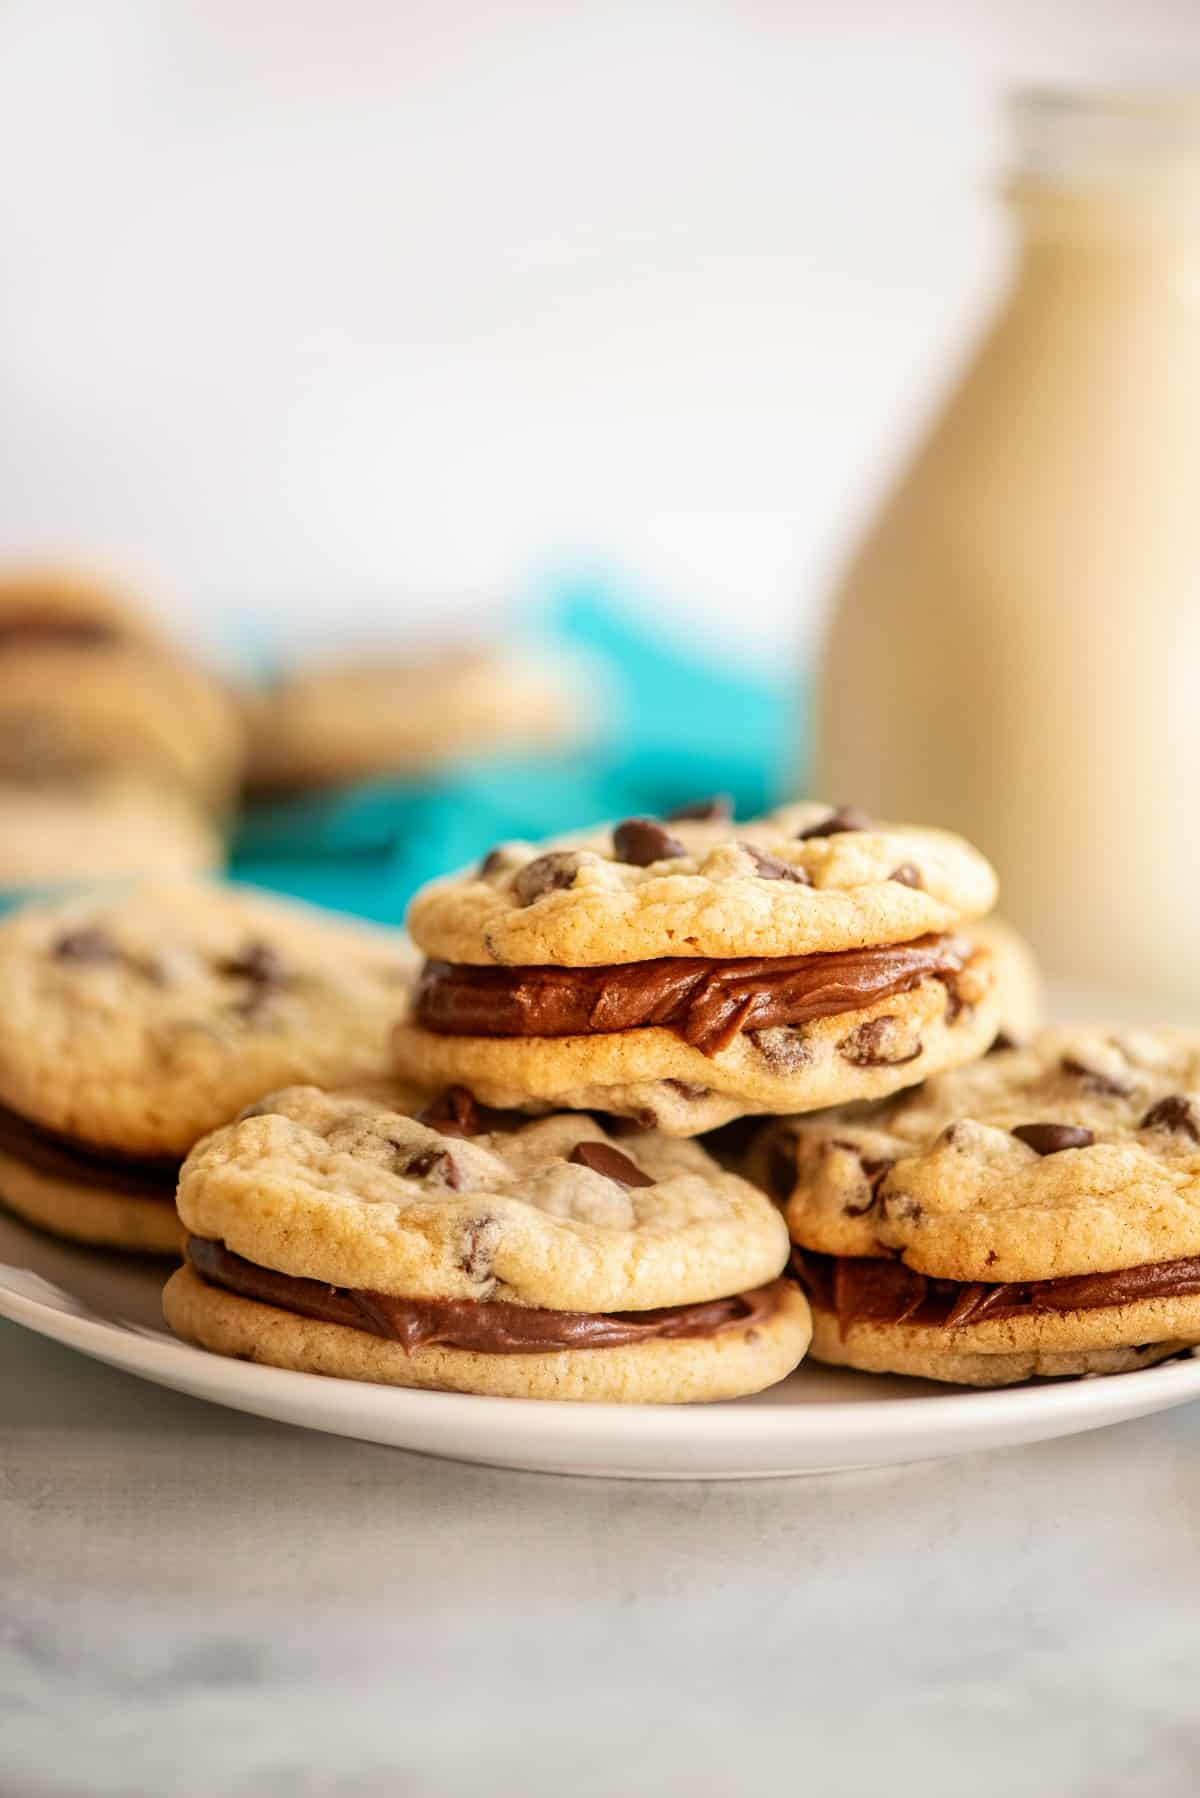 Chocolate Chip cookie sandwiches stacked on a white plate.